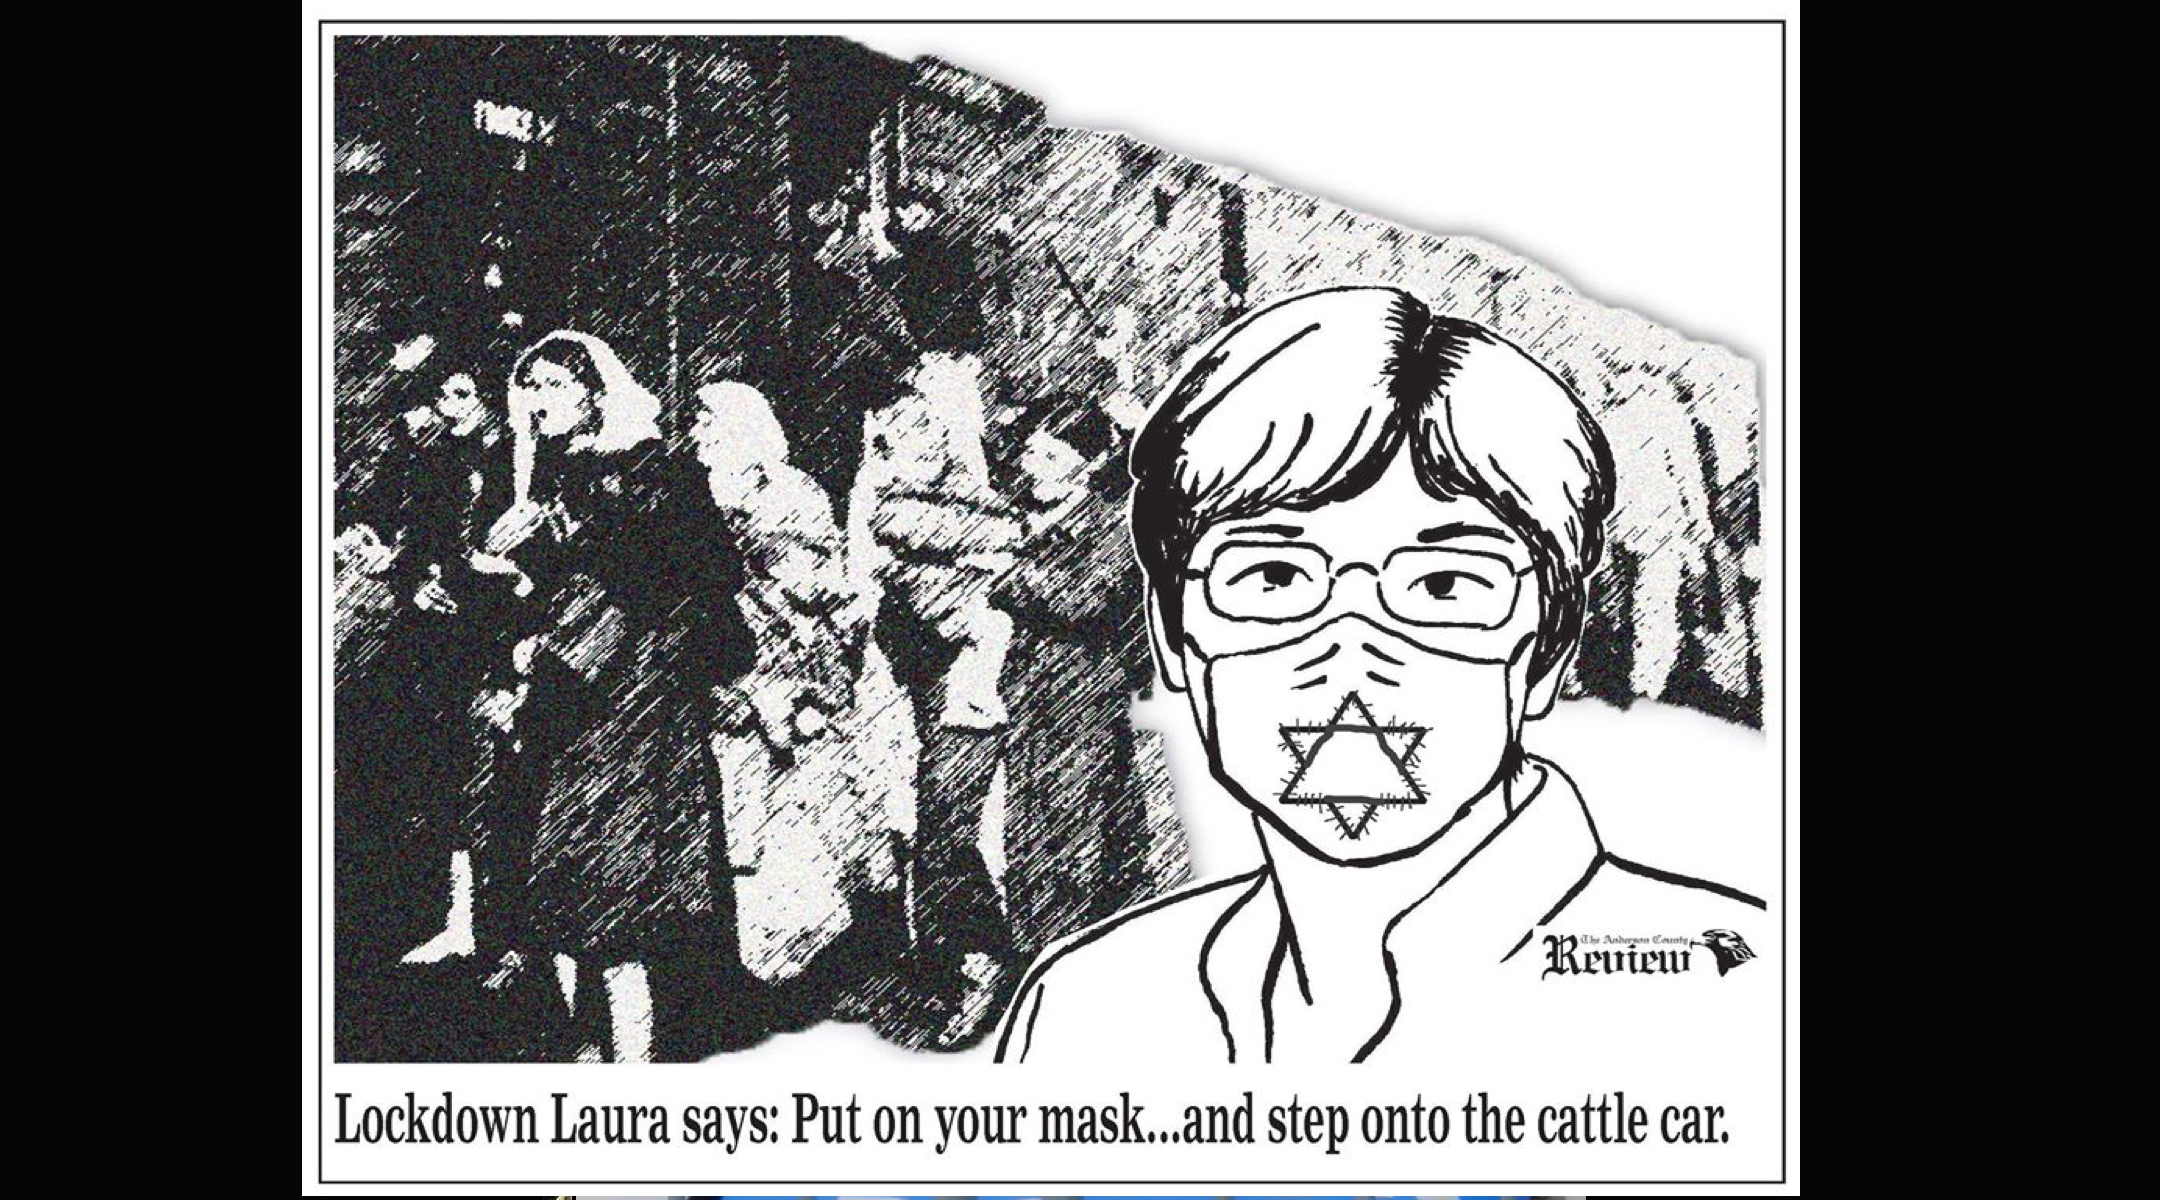 After criticism, Kansas newspaper removes cartoon likening mask requirement to the Holocaust